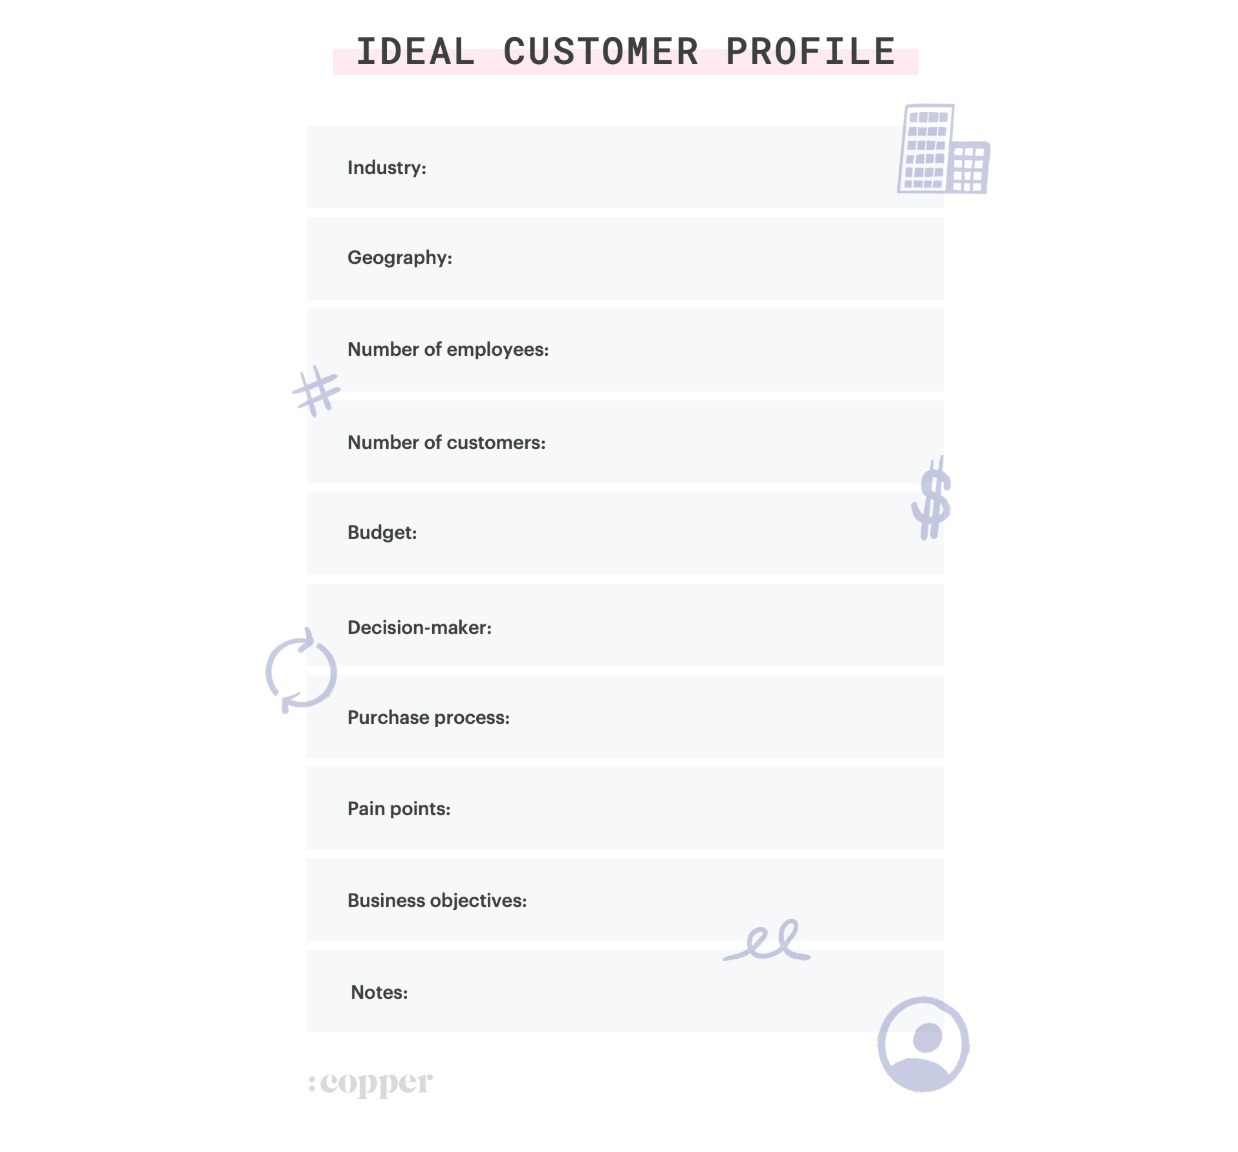 ideal customer profile worksheet